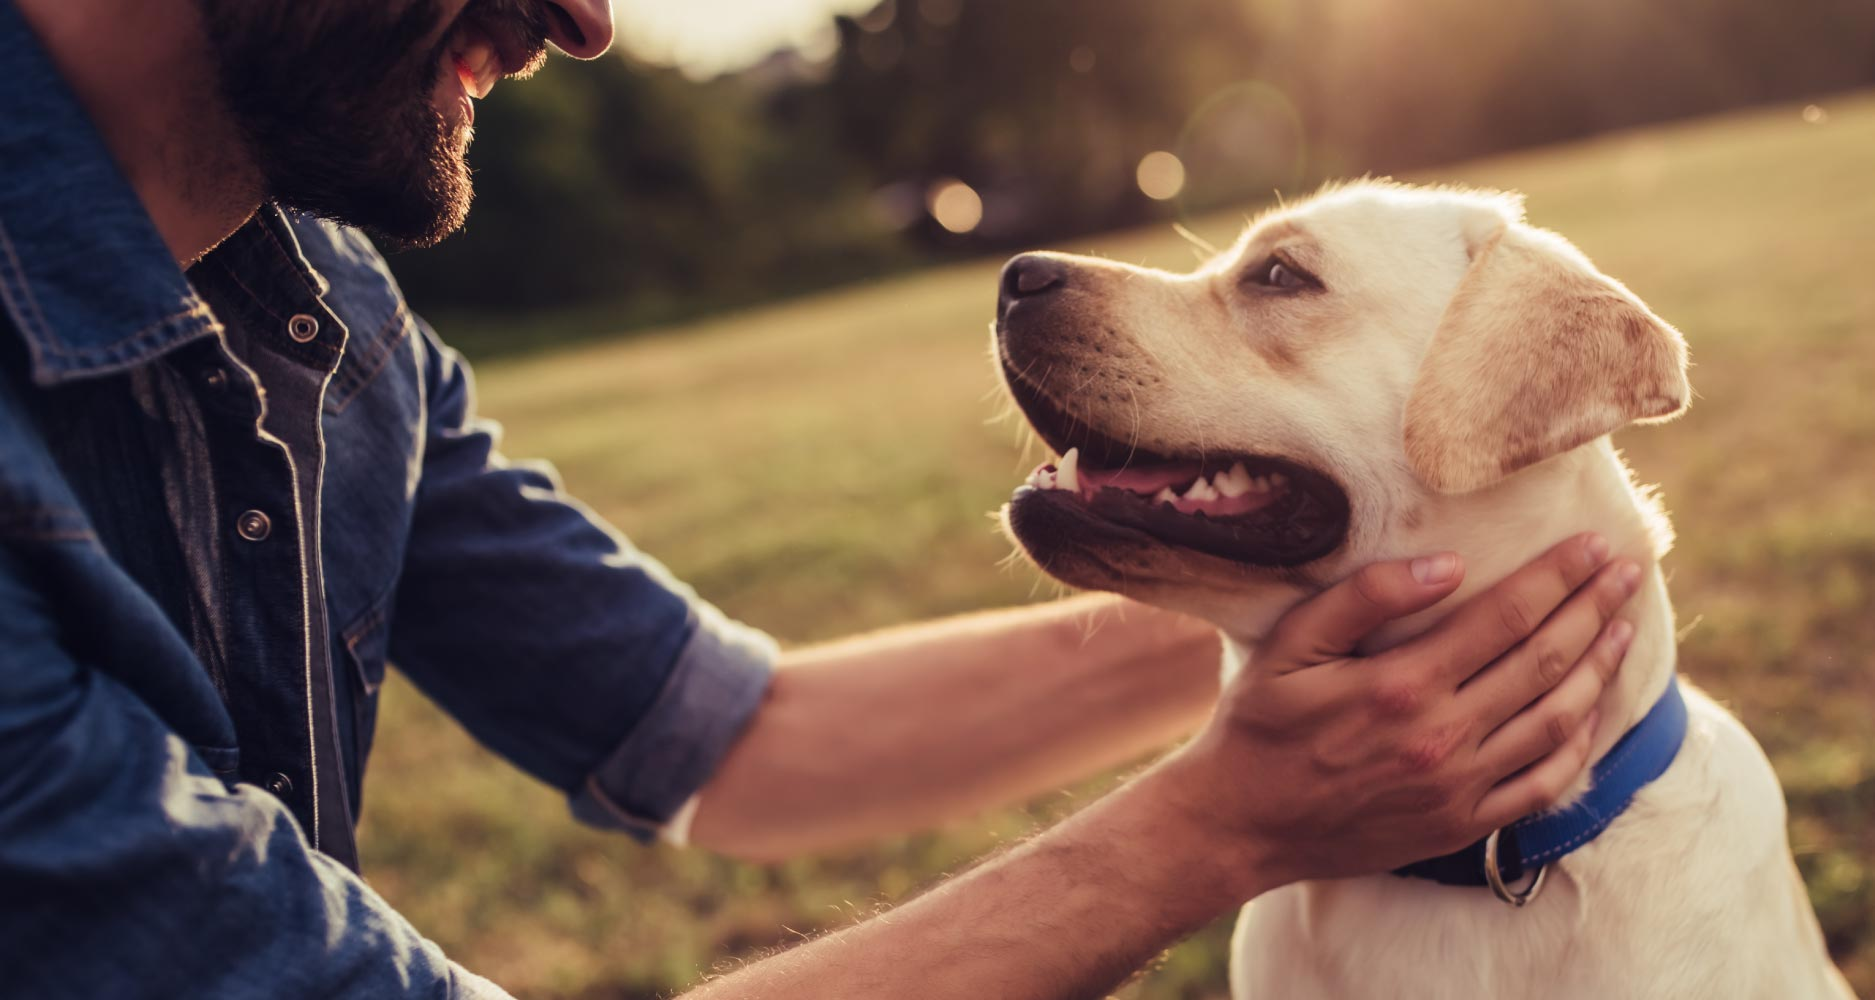 Epilepsy and seizures in dogs